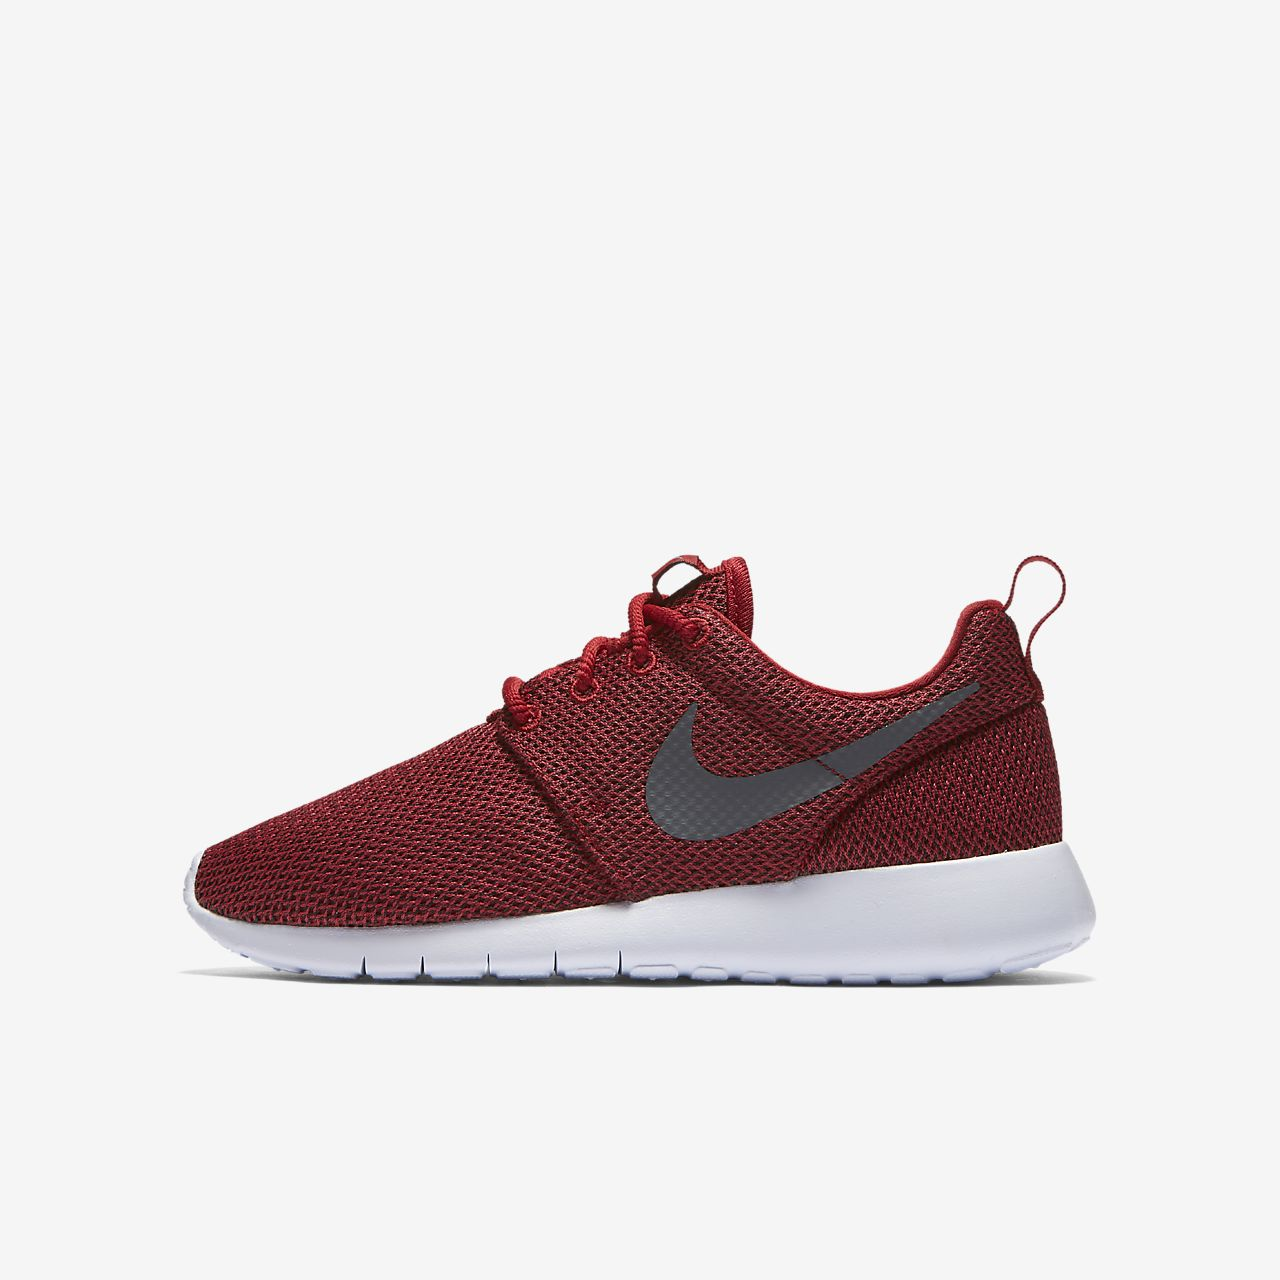 Nike Roshe One Kids Shoes Black/White/Orange